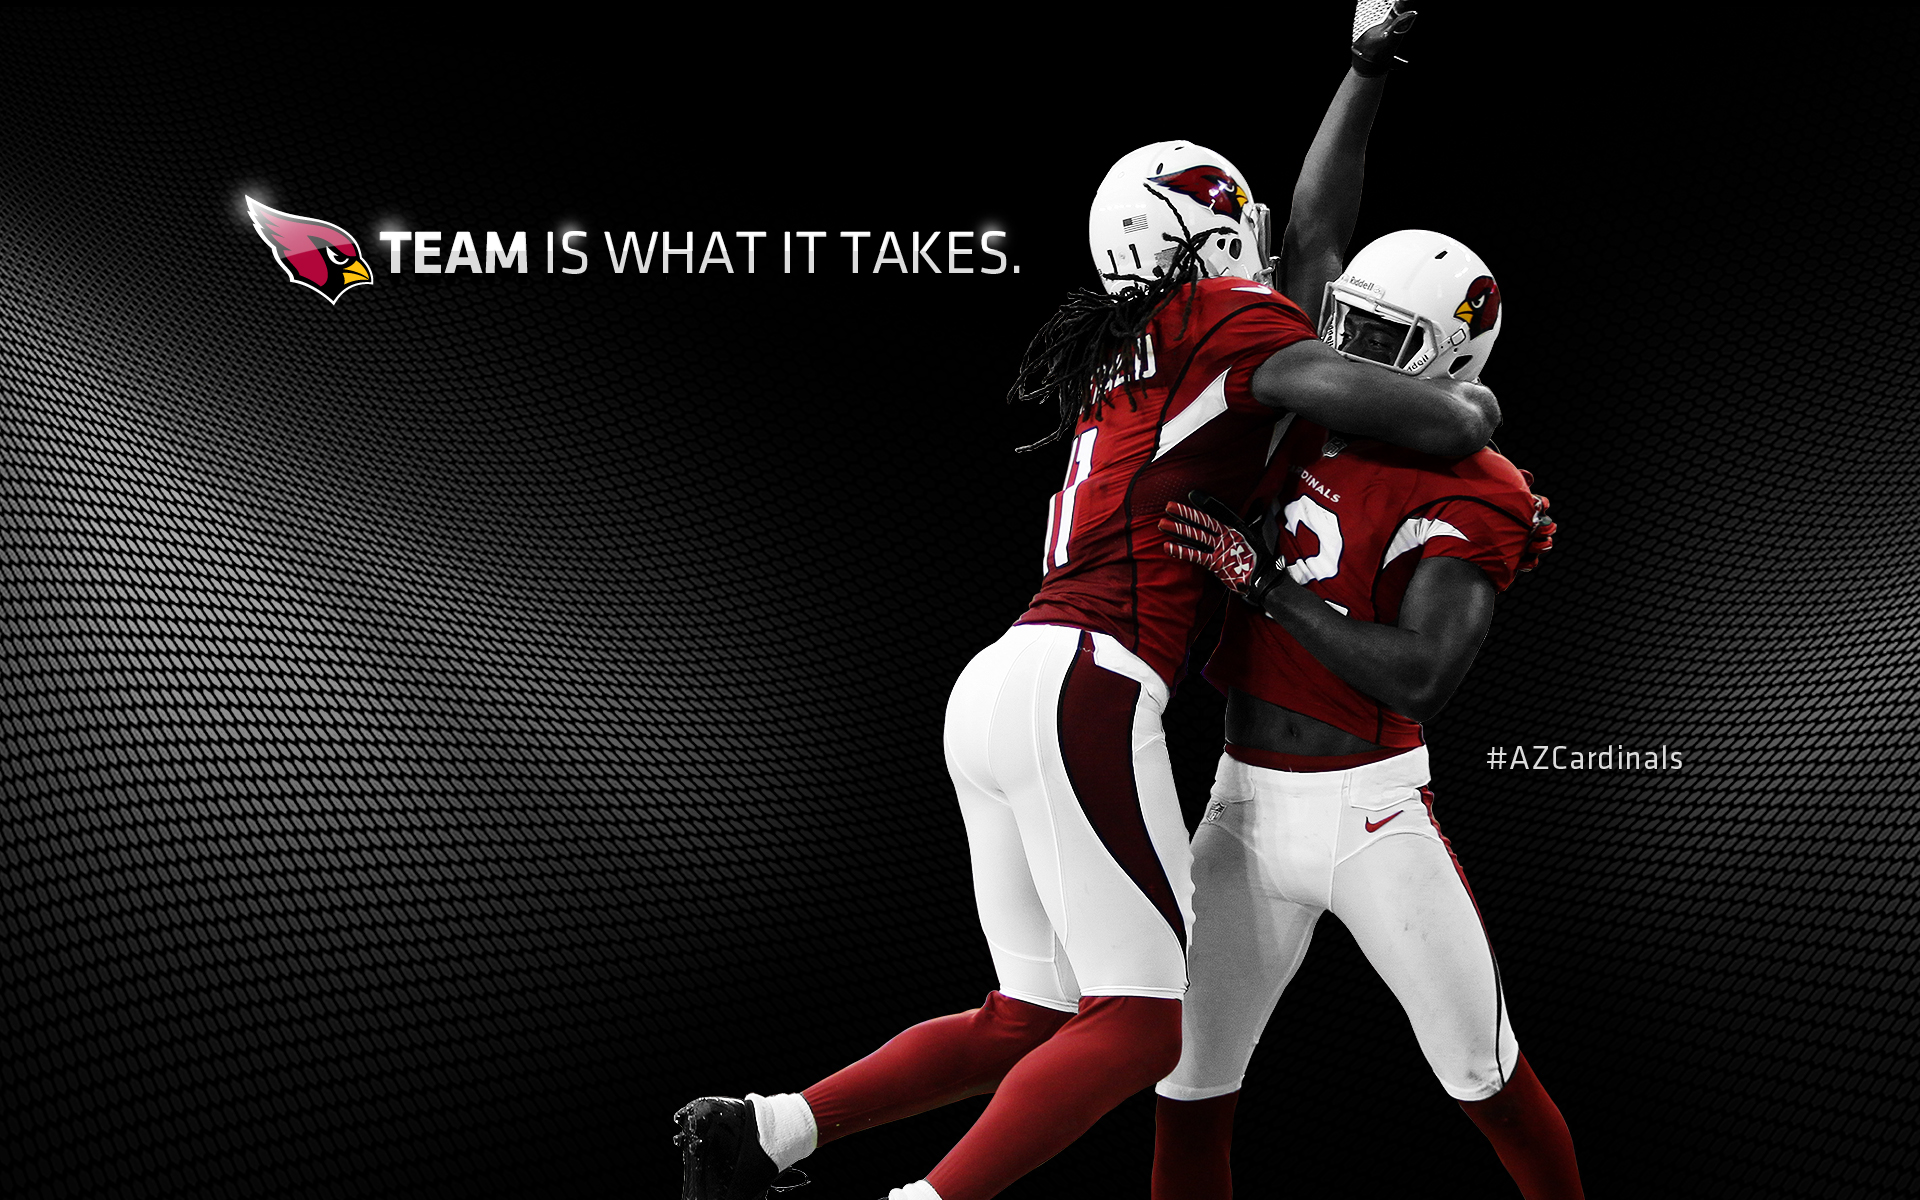 azcardinals com | Downloads